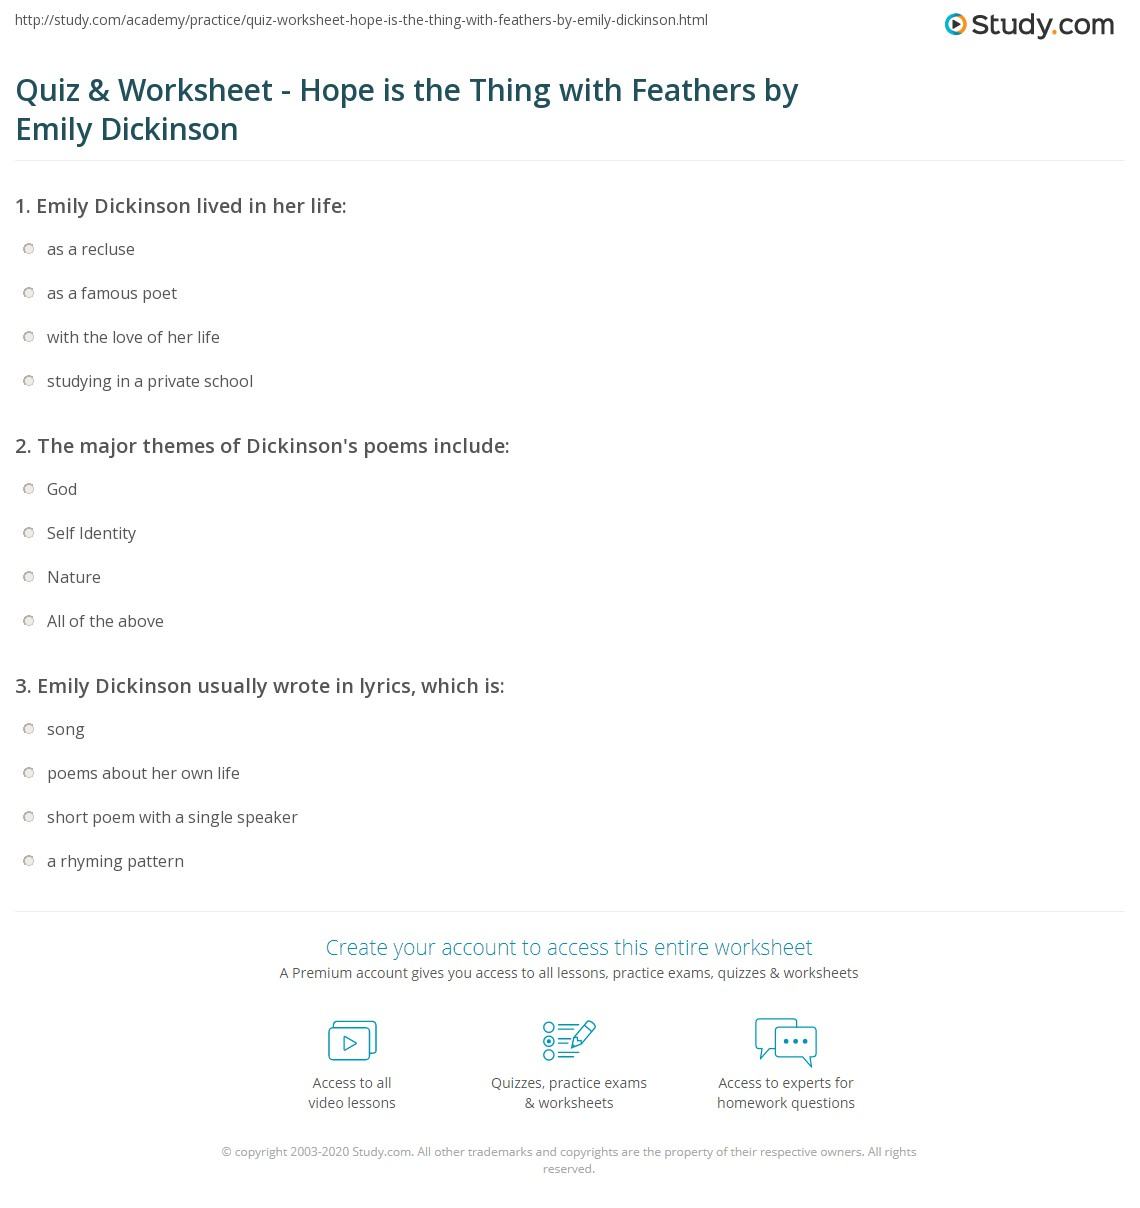 emily dickinson essay essay poetry english quiz worksheet hope is  quiz worksheet hope is the thing feathers by emily print emily dickinson s hope is the